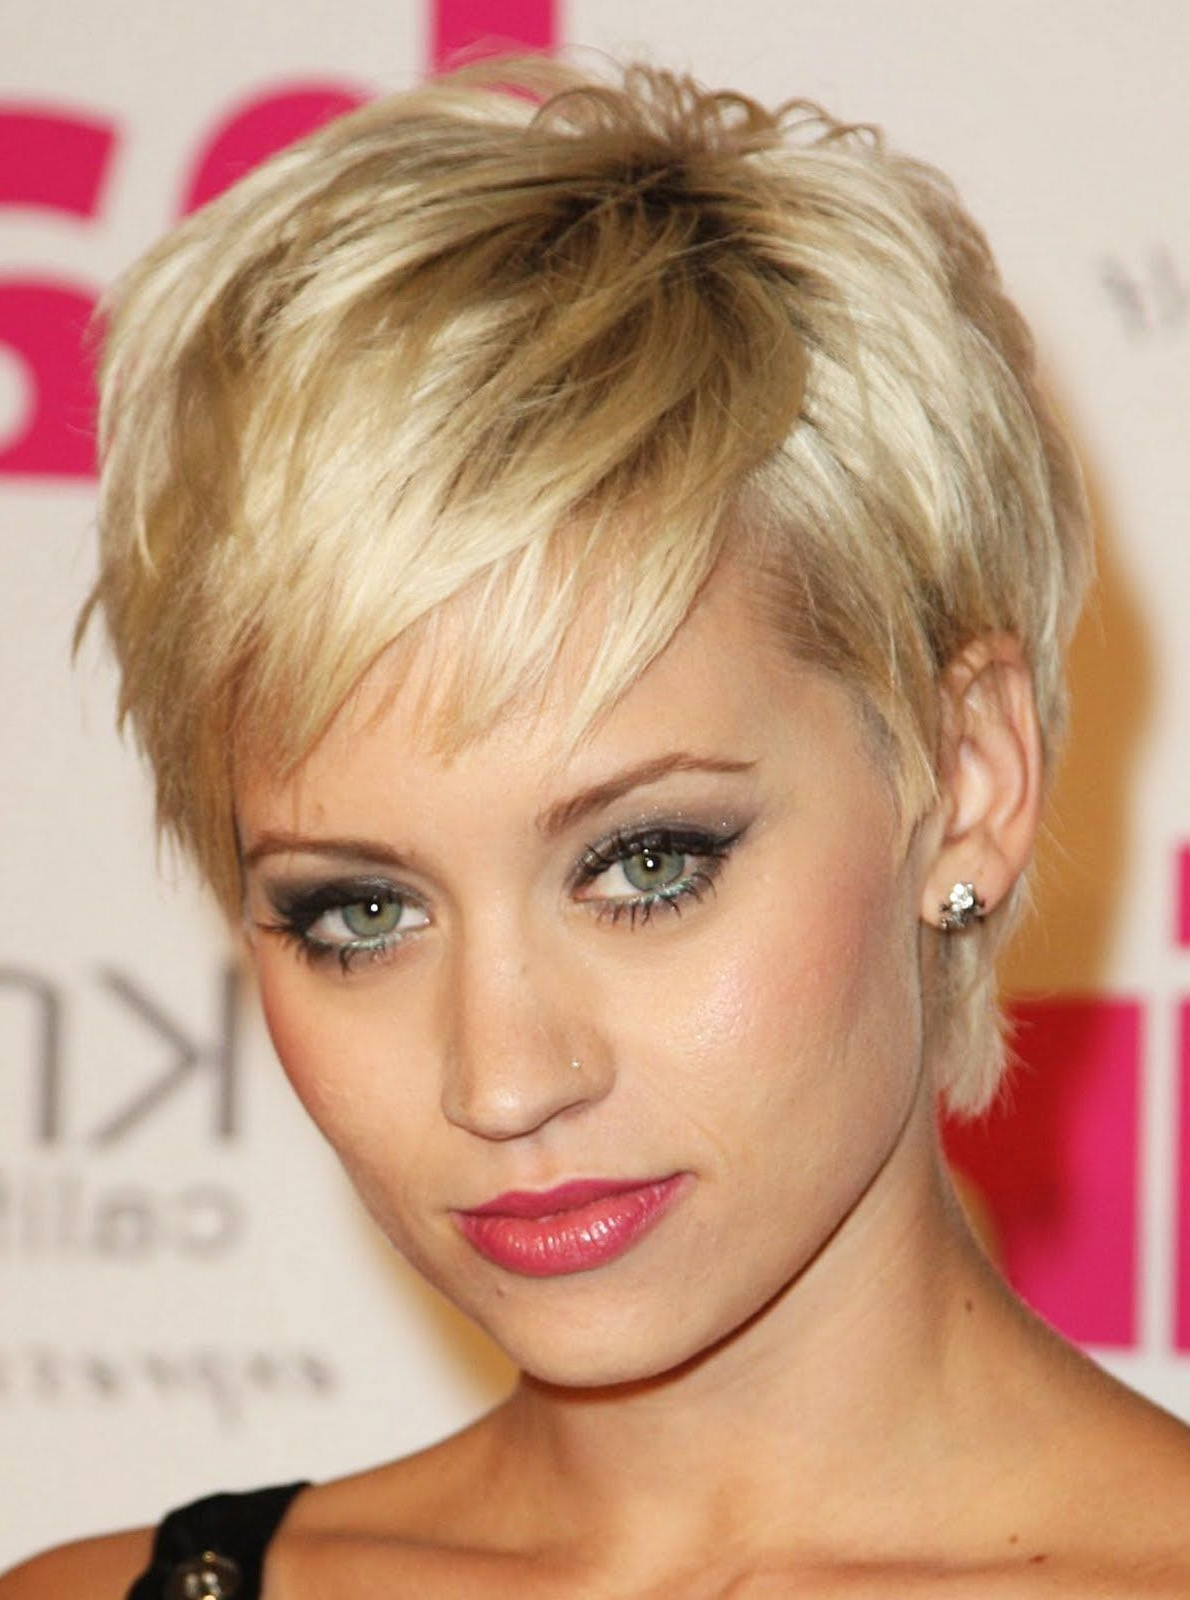 Short Hairstyles For Oval Faces | Hair Cut | Pinterest | Short Hair With Short Trendy Hairstyles For Fine Hair (View 17 of 25)